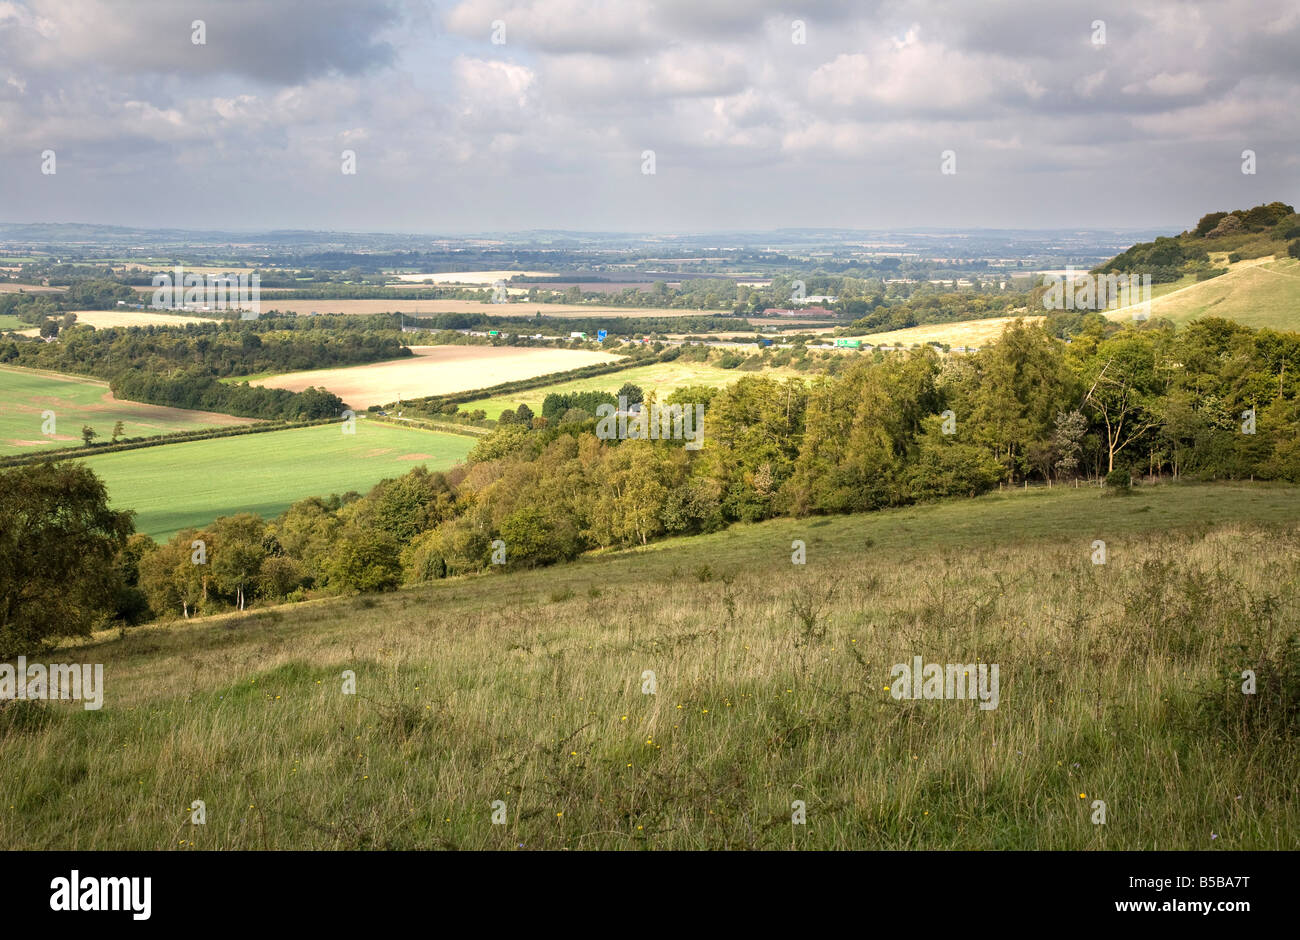 aston rowant oxfordshire chilterns with M40 motorway in distance - Stock Image